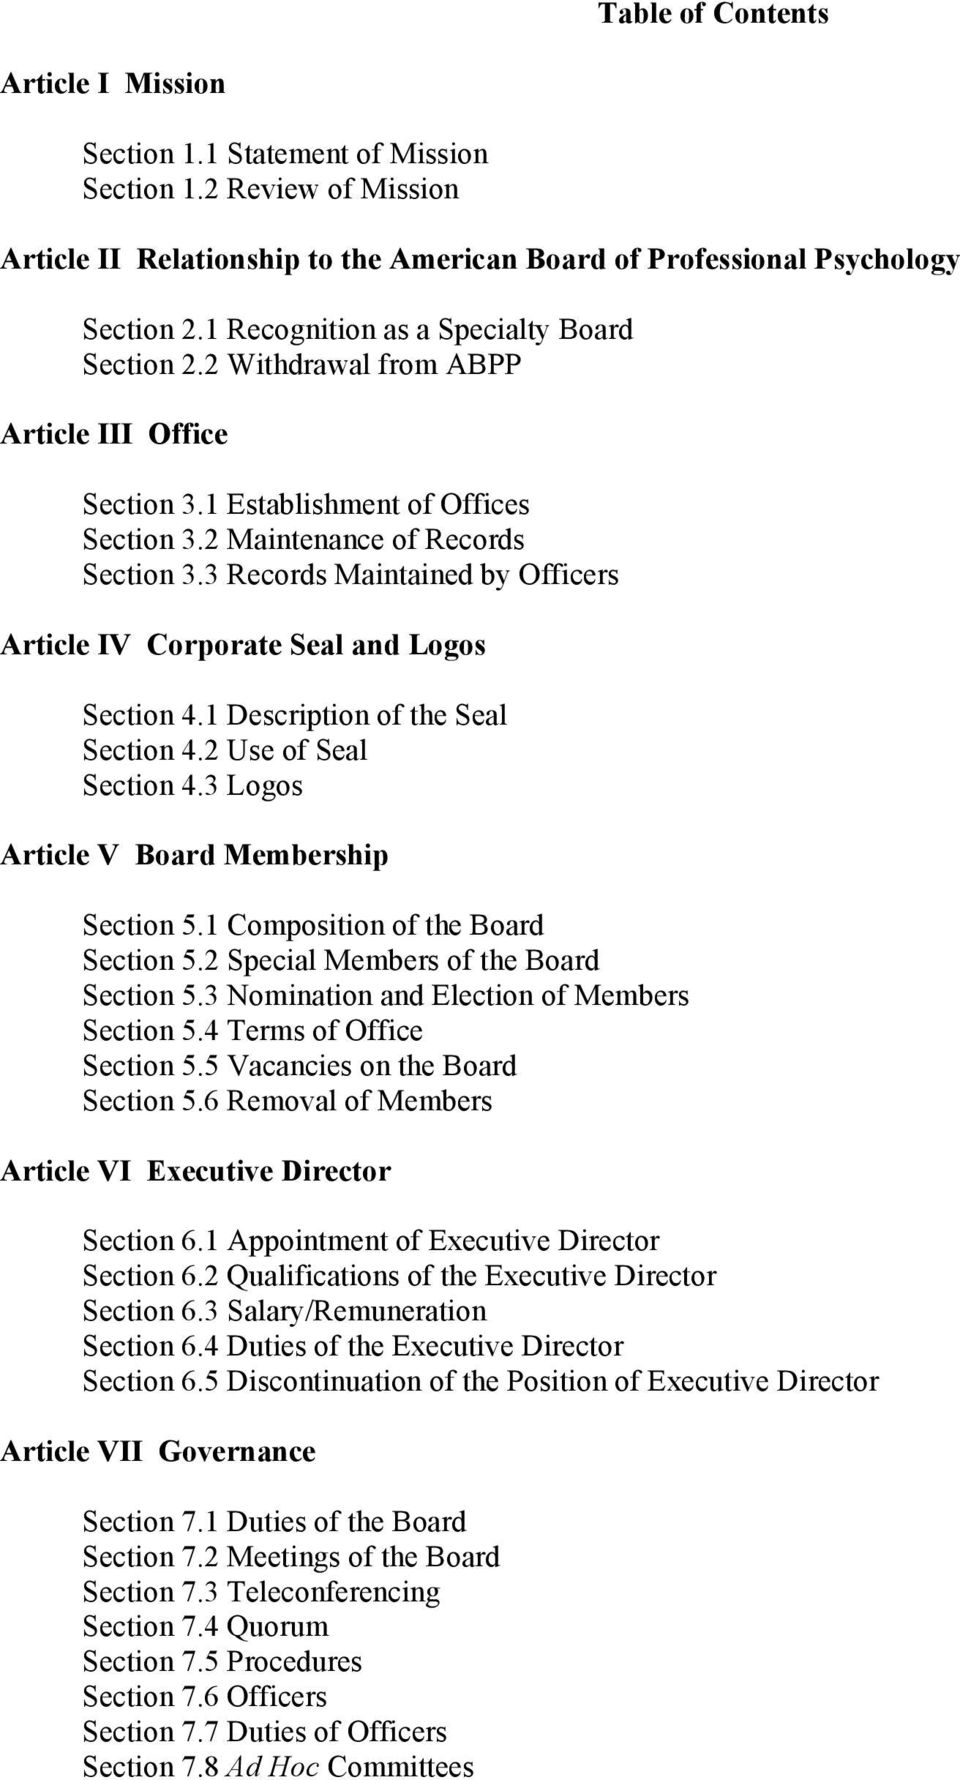 3 Records Maintained by Officers Article IV Corporate Seal and Logos Section 4.1 Description of the Seal Section 4.2 Use of Seal Section 4.3 Logos Article V Board Membership Section 5.